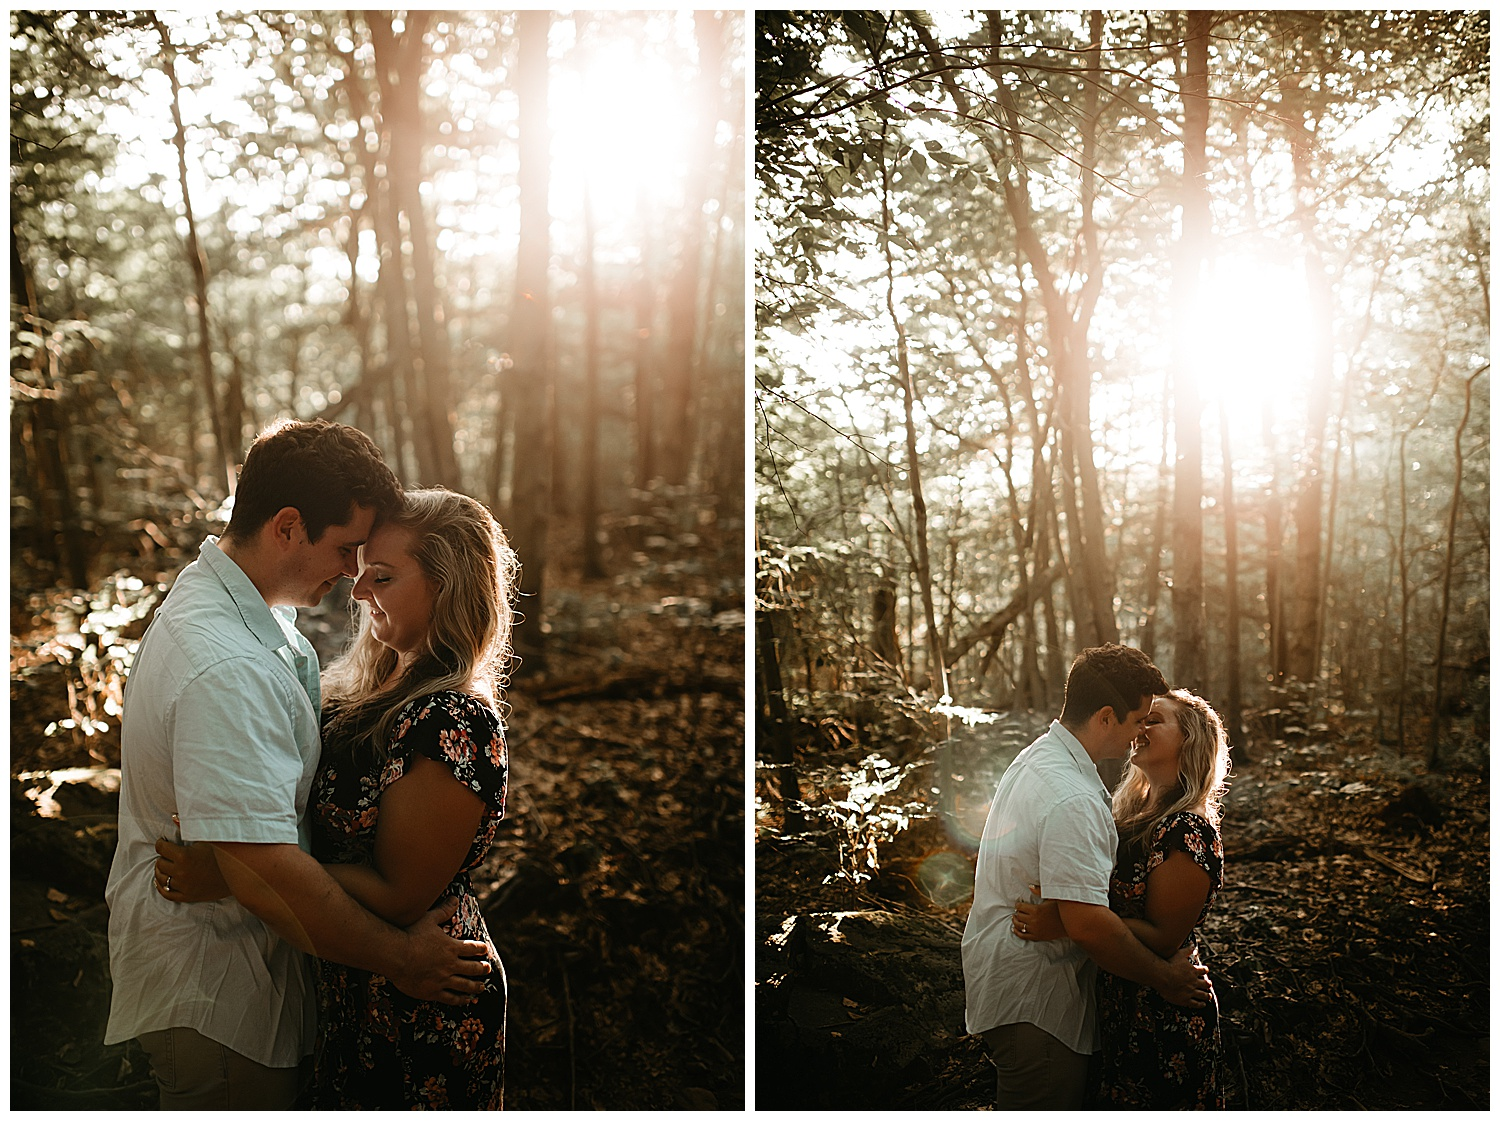 NEPA-Bloomsburg-Lehigh-Valley-Wedding-Photographer-Engagement-session-at-Ricketts-Glen-State-Park_0008.jpg